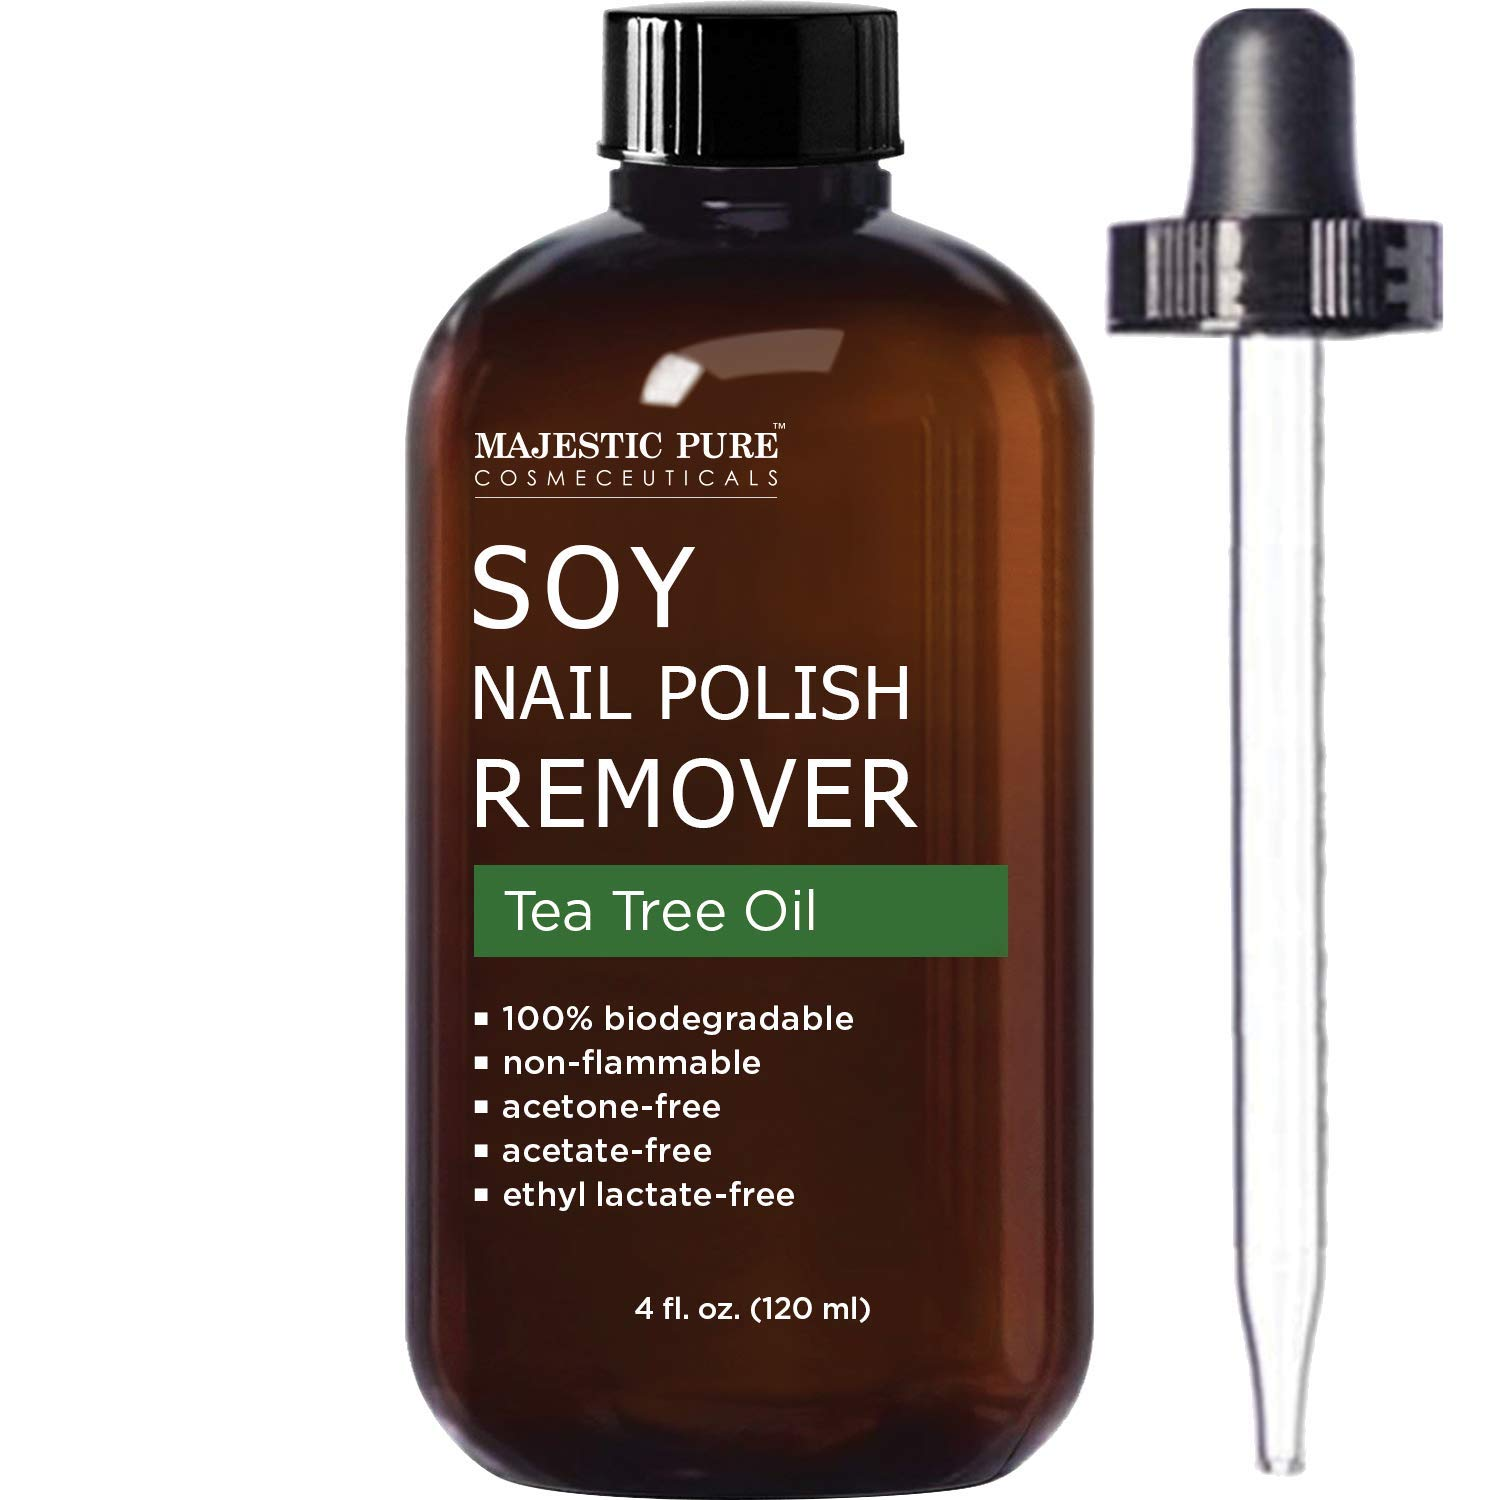 MAJESTIC PURE Soy Nail Polish Remover - Natural Acetone Free for Fingernail - Infused with Tea Tree Oil - Safe, Healthy, Gentle, Strengthening and Non Toxic - 4 fl oz by Majestic Pure